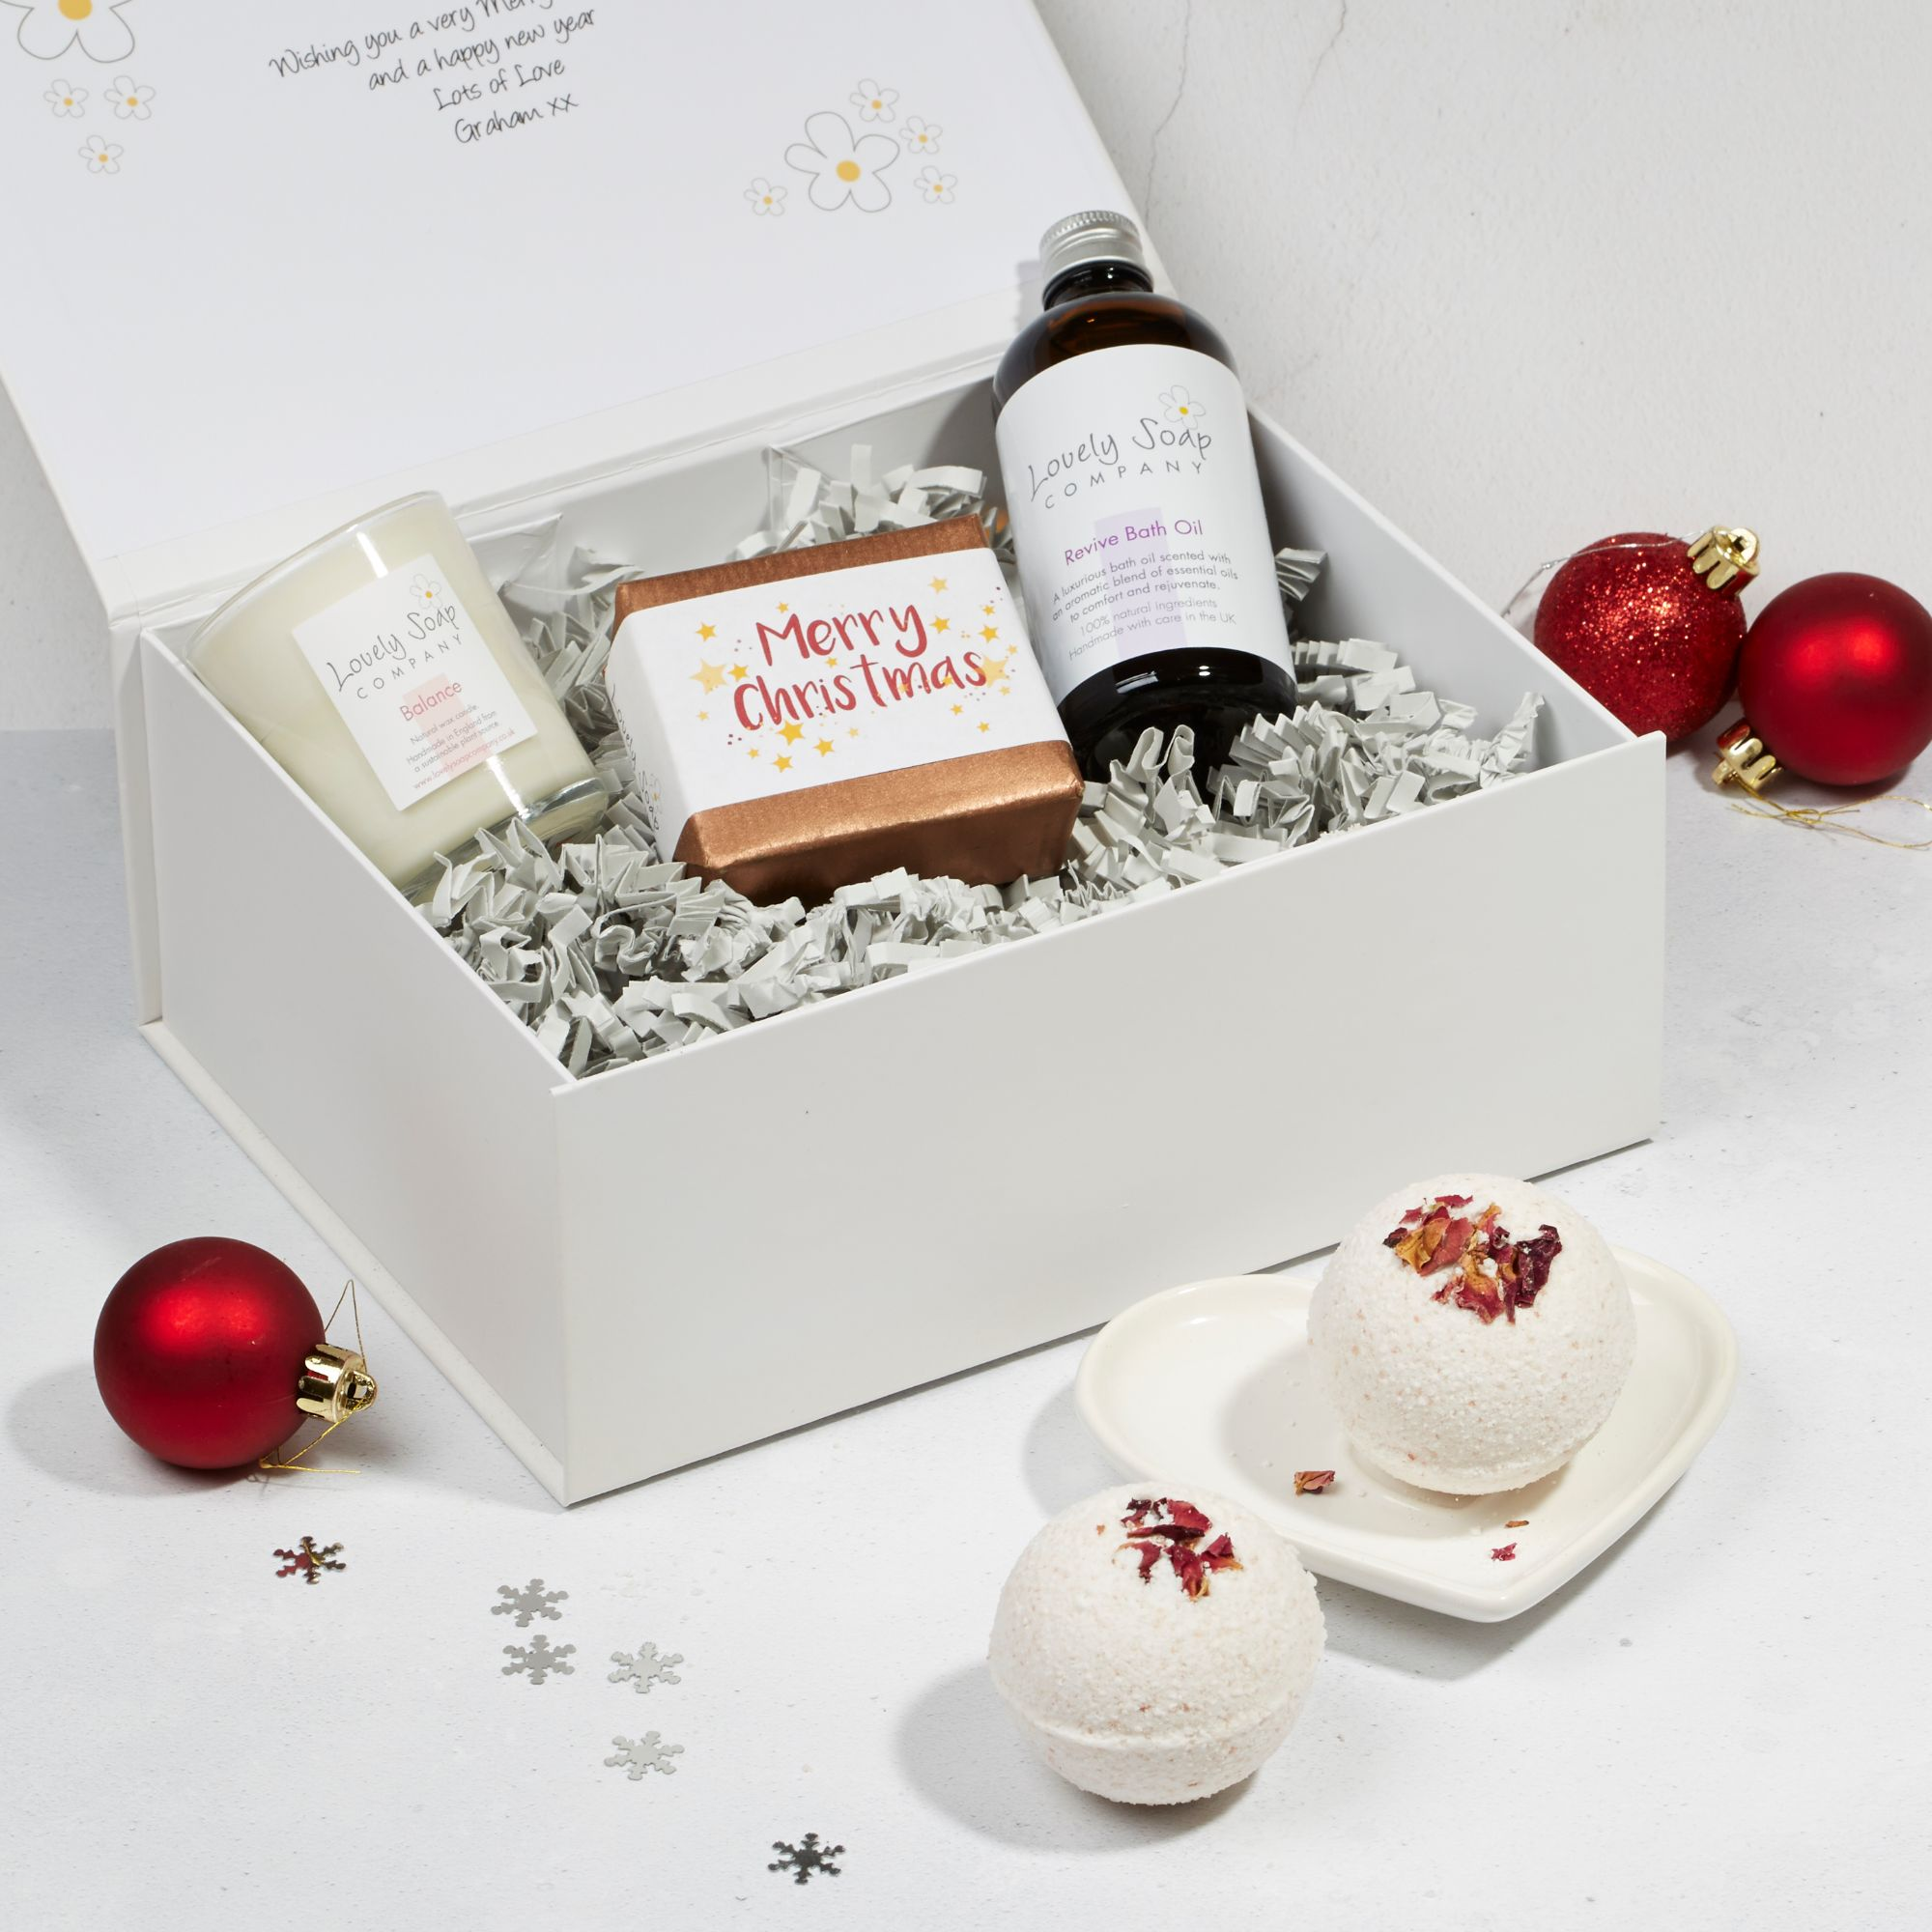 Revive xmas pamper hamper with rose geranium bath bombs, balance candle, revive bath oil and lavender soap